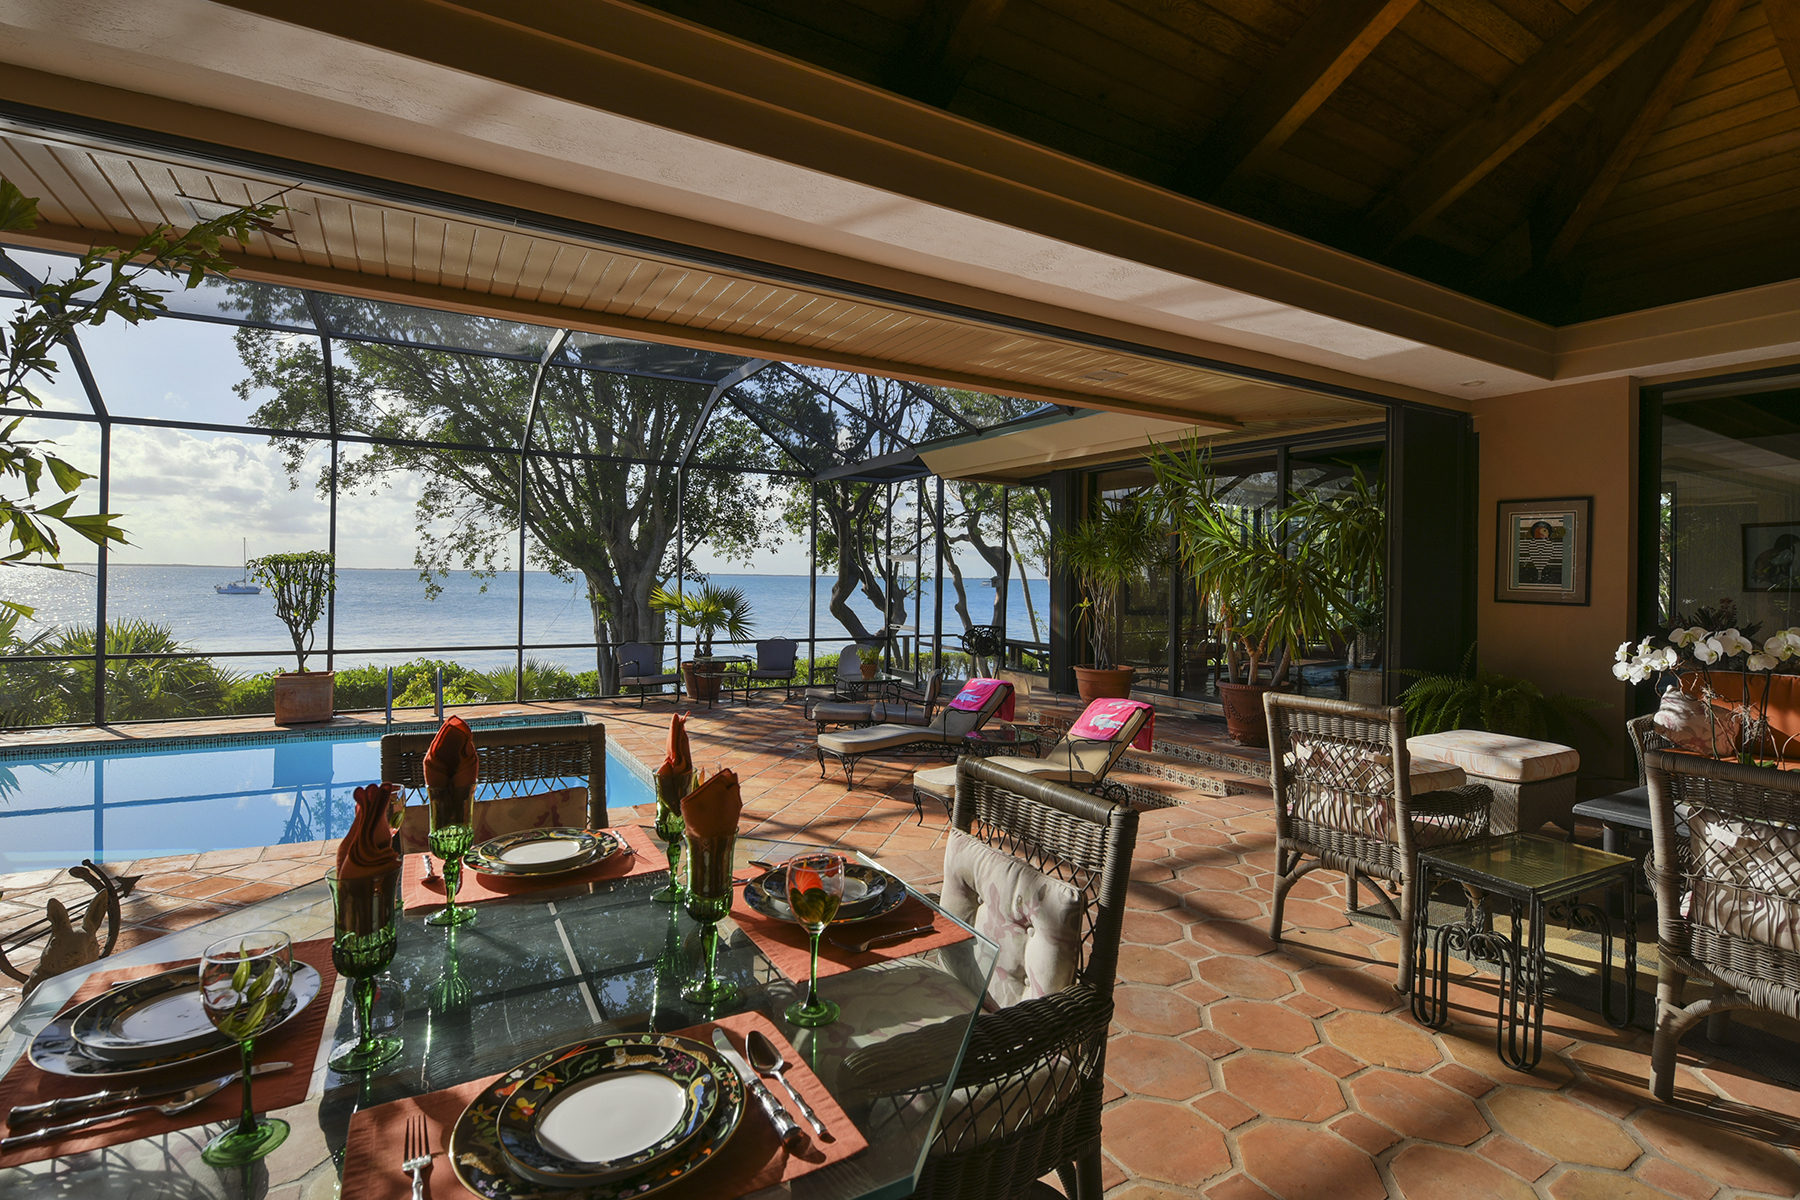 Additional photo for property listing at Pumpkin Key - Private Island, Key Largo, FL  Key Largo, Floride 33037 États-Unis